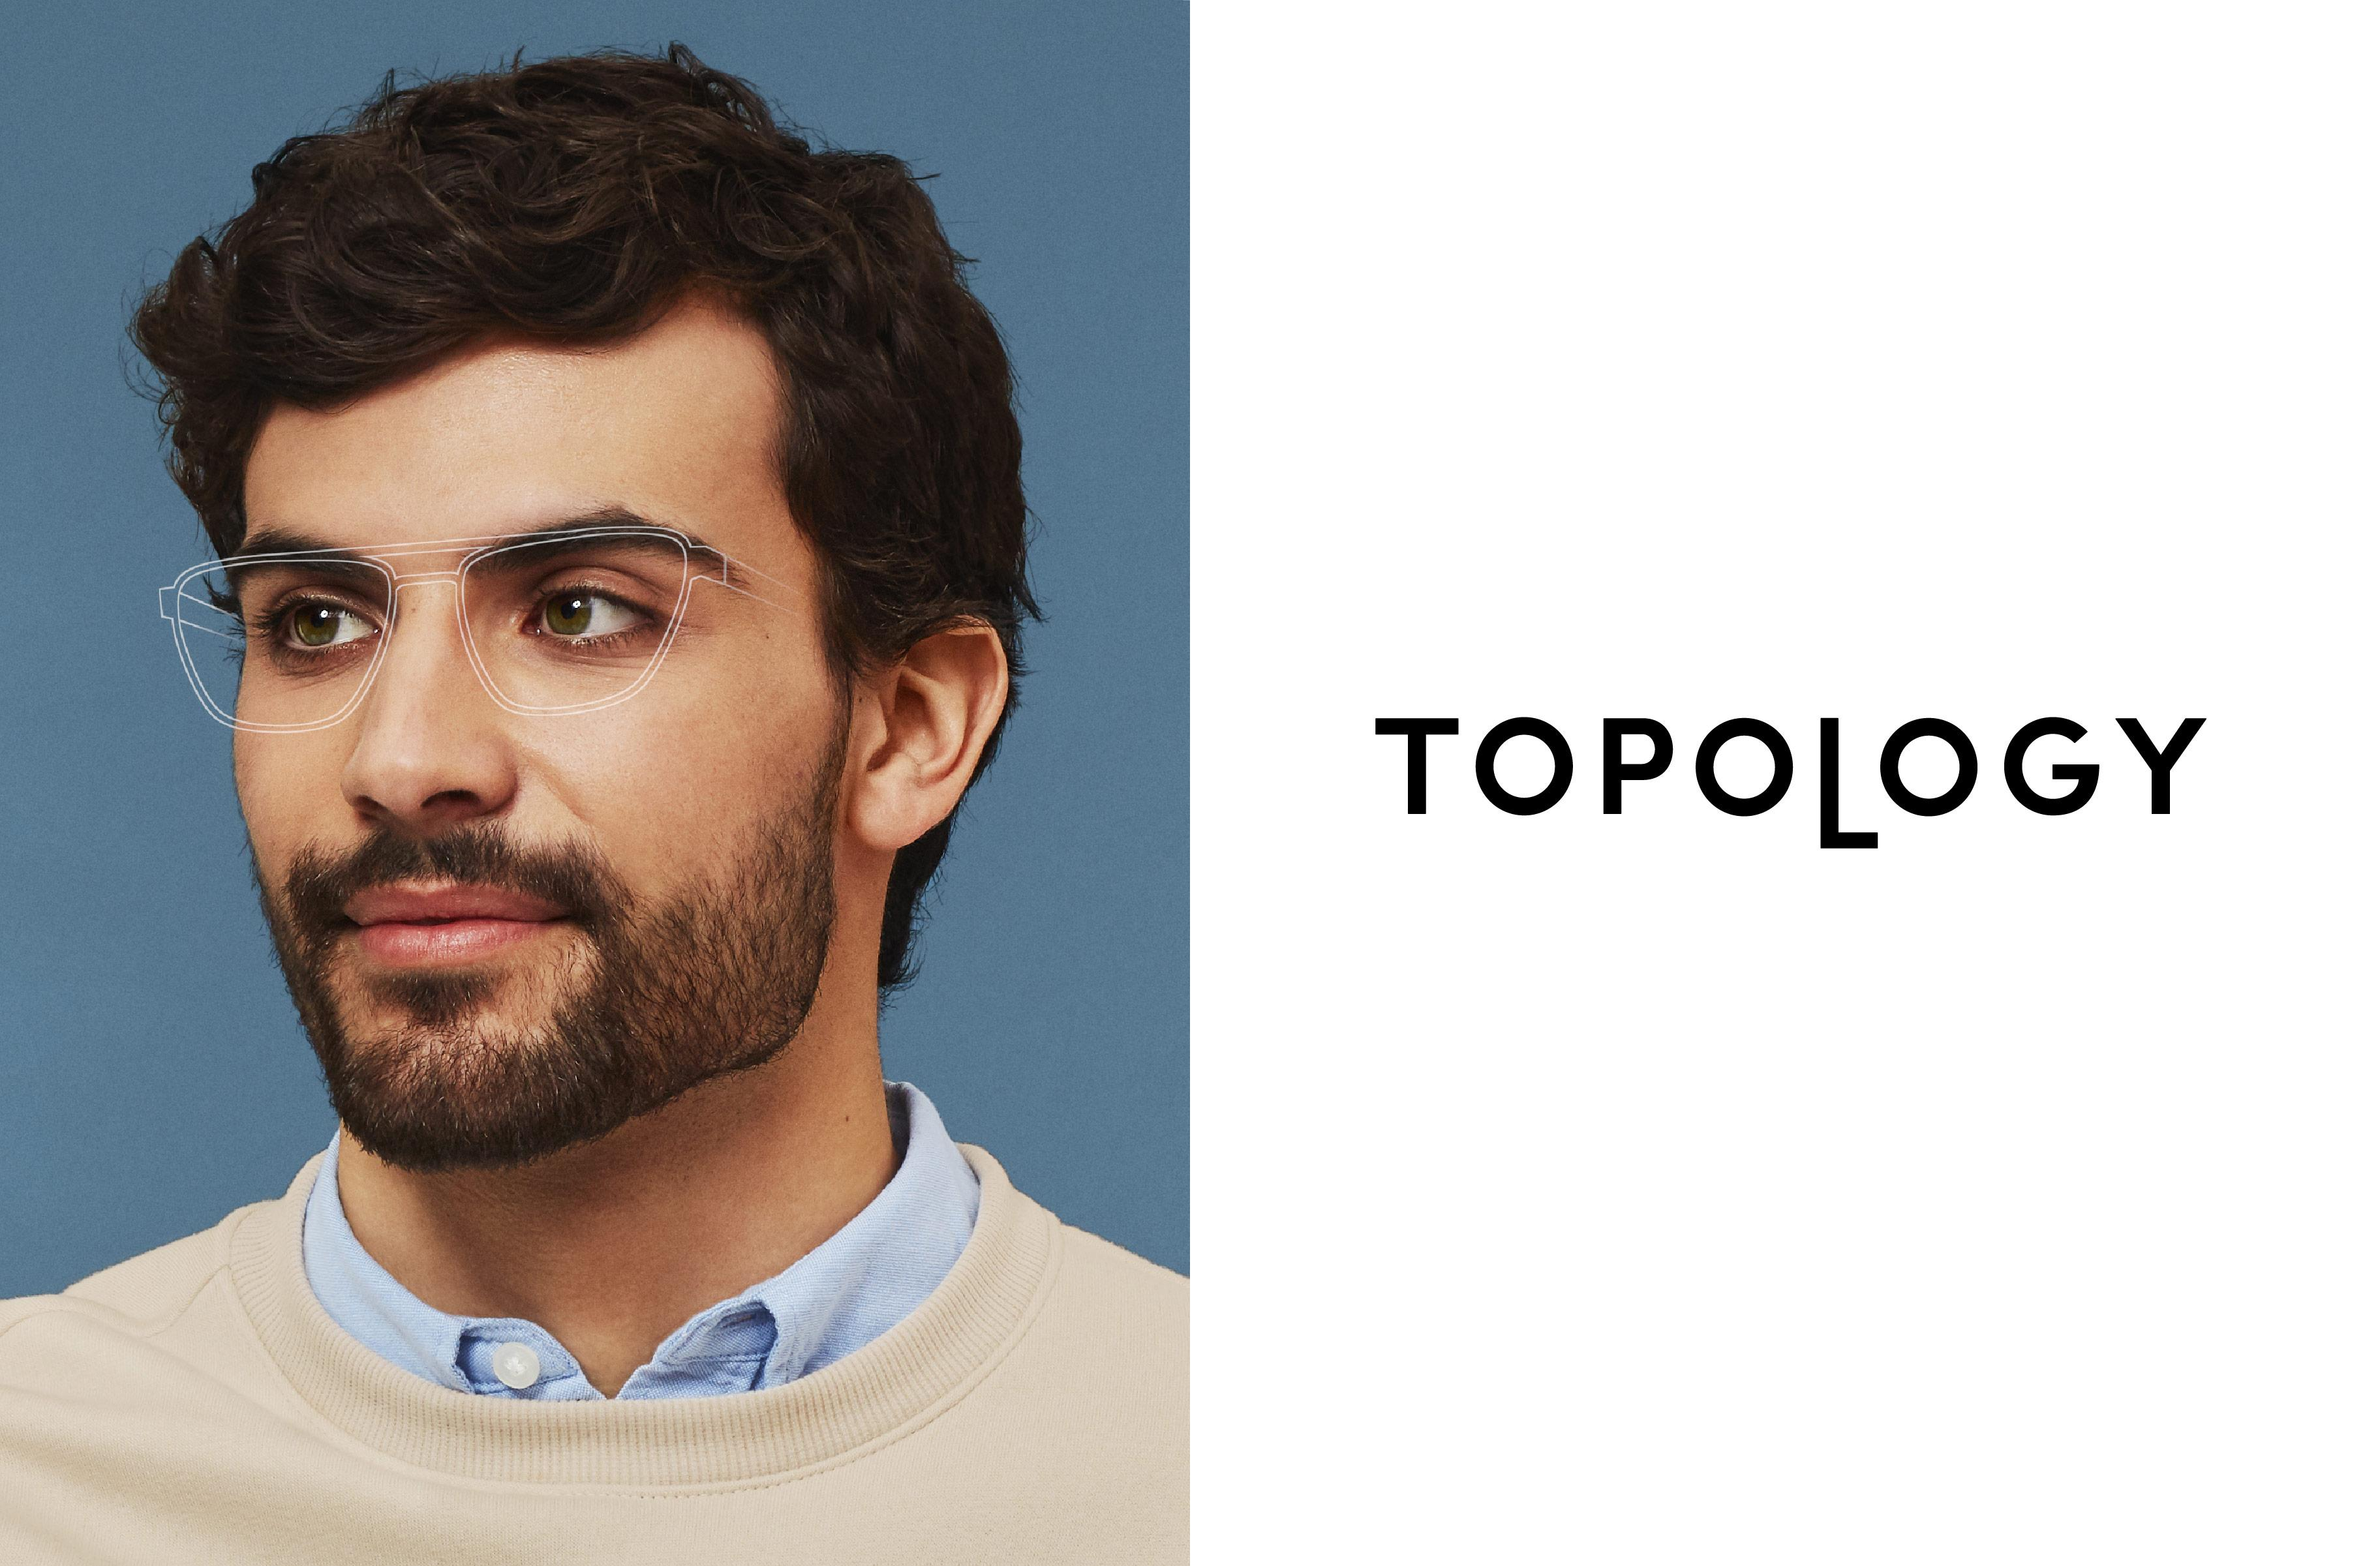 Topology: Perfect fit, exceptional vision and remarkable style